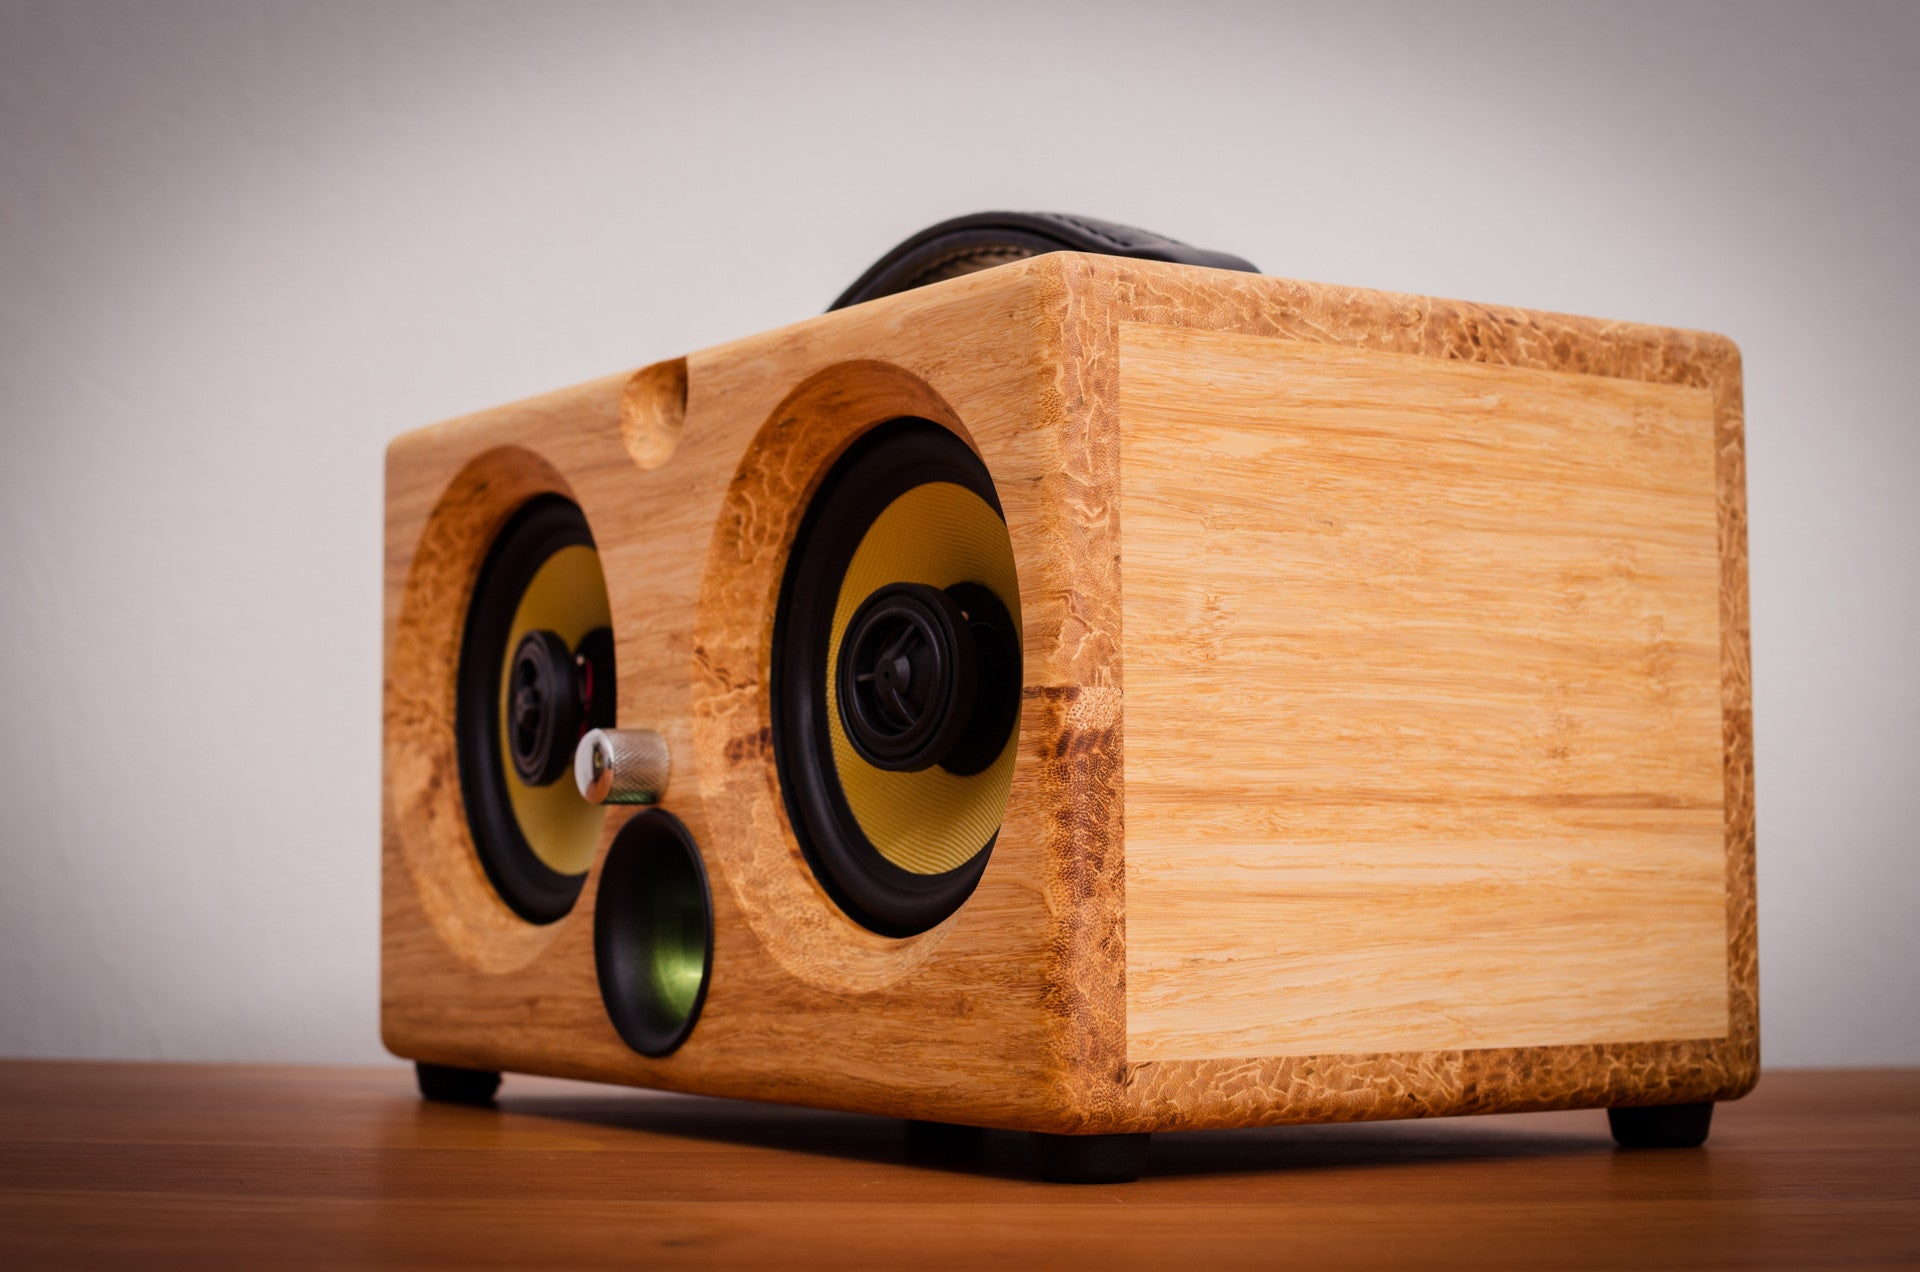 Best airplay speaker 2016 review wifi bluetooth speakers aptx new latest ultimate coolest speakers available wood solid woods wooden vintage hipster audiophile tk2050 sta508 sta516 tripath amplifier guitar amplifier HD sound music high resolution high definition Thodio 1